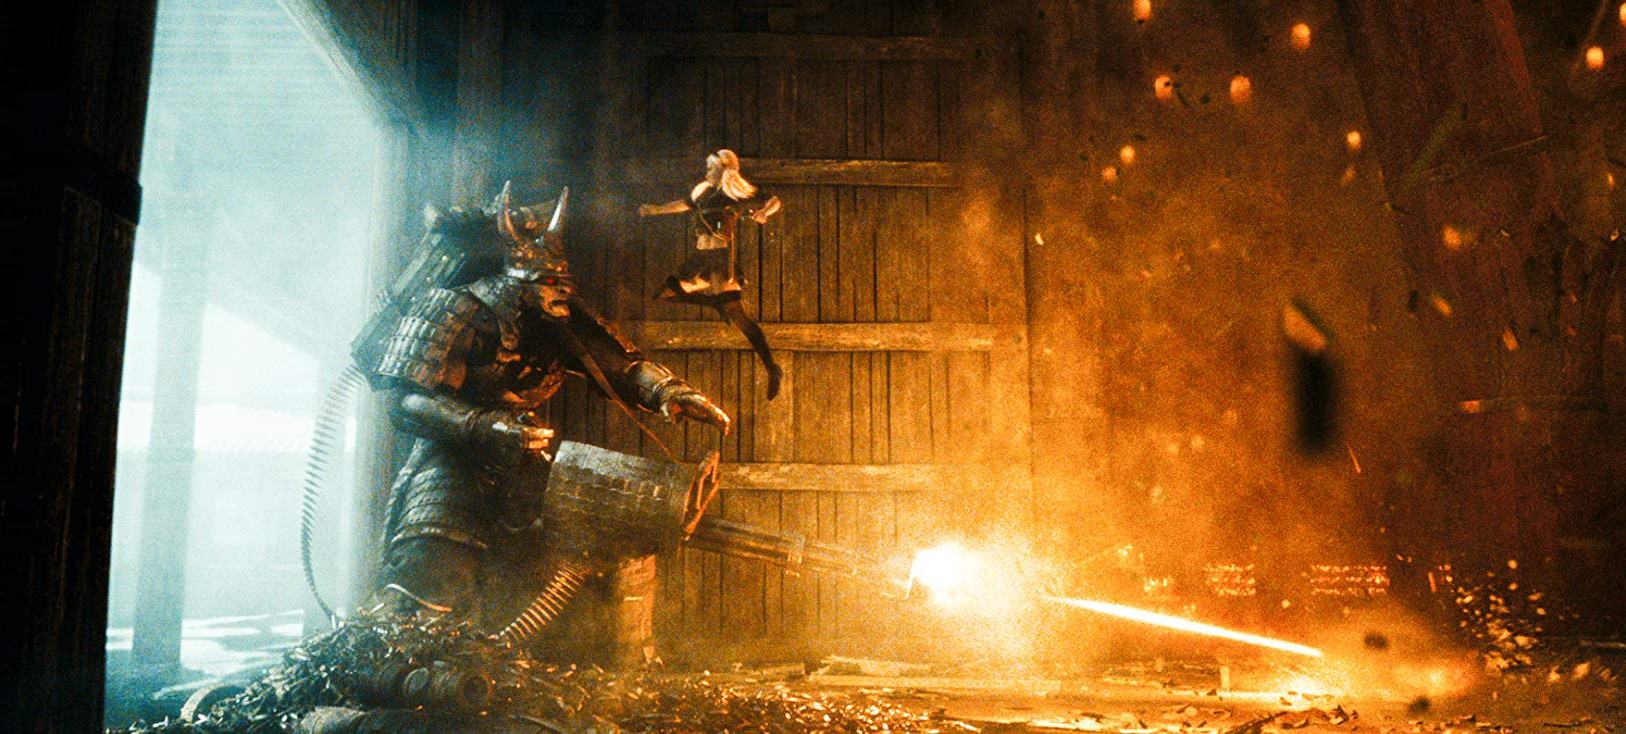 Emily Browning vs a giant samurai in Sucker Punch (2011)